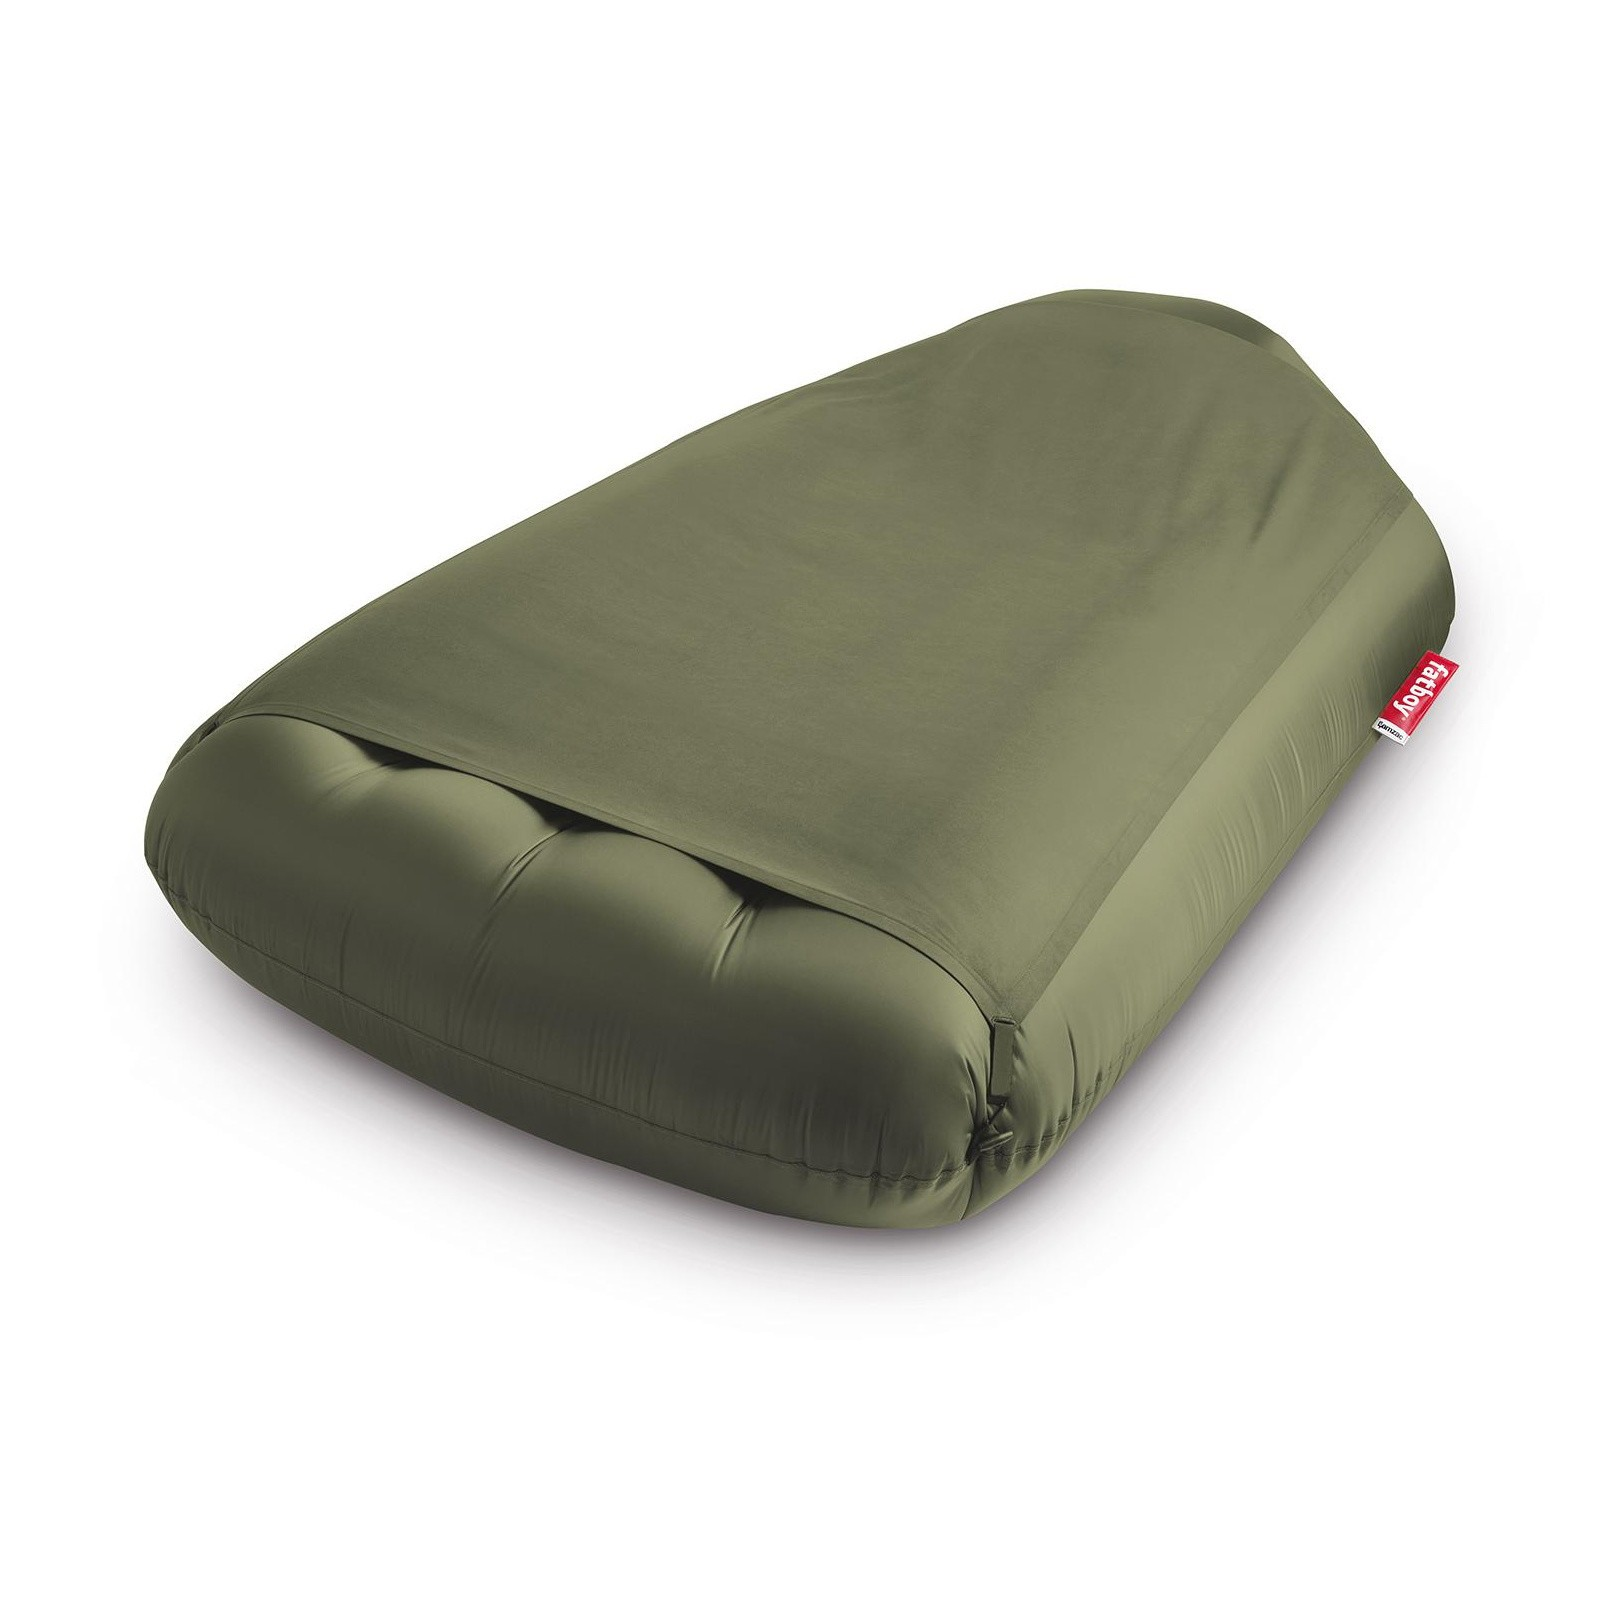 Outdoor Bubble Bett Fatboy Lamzac Lounge Bed L Deluxe